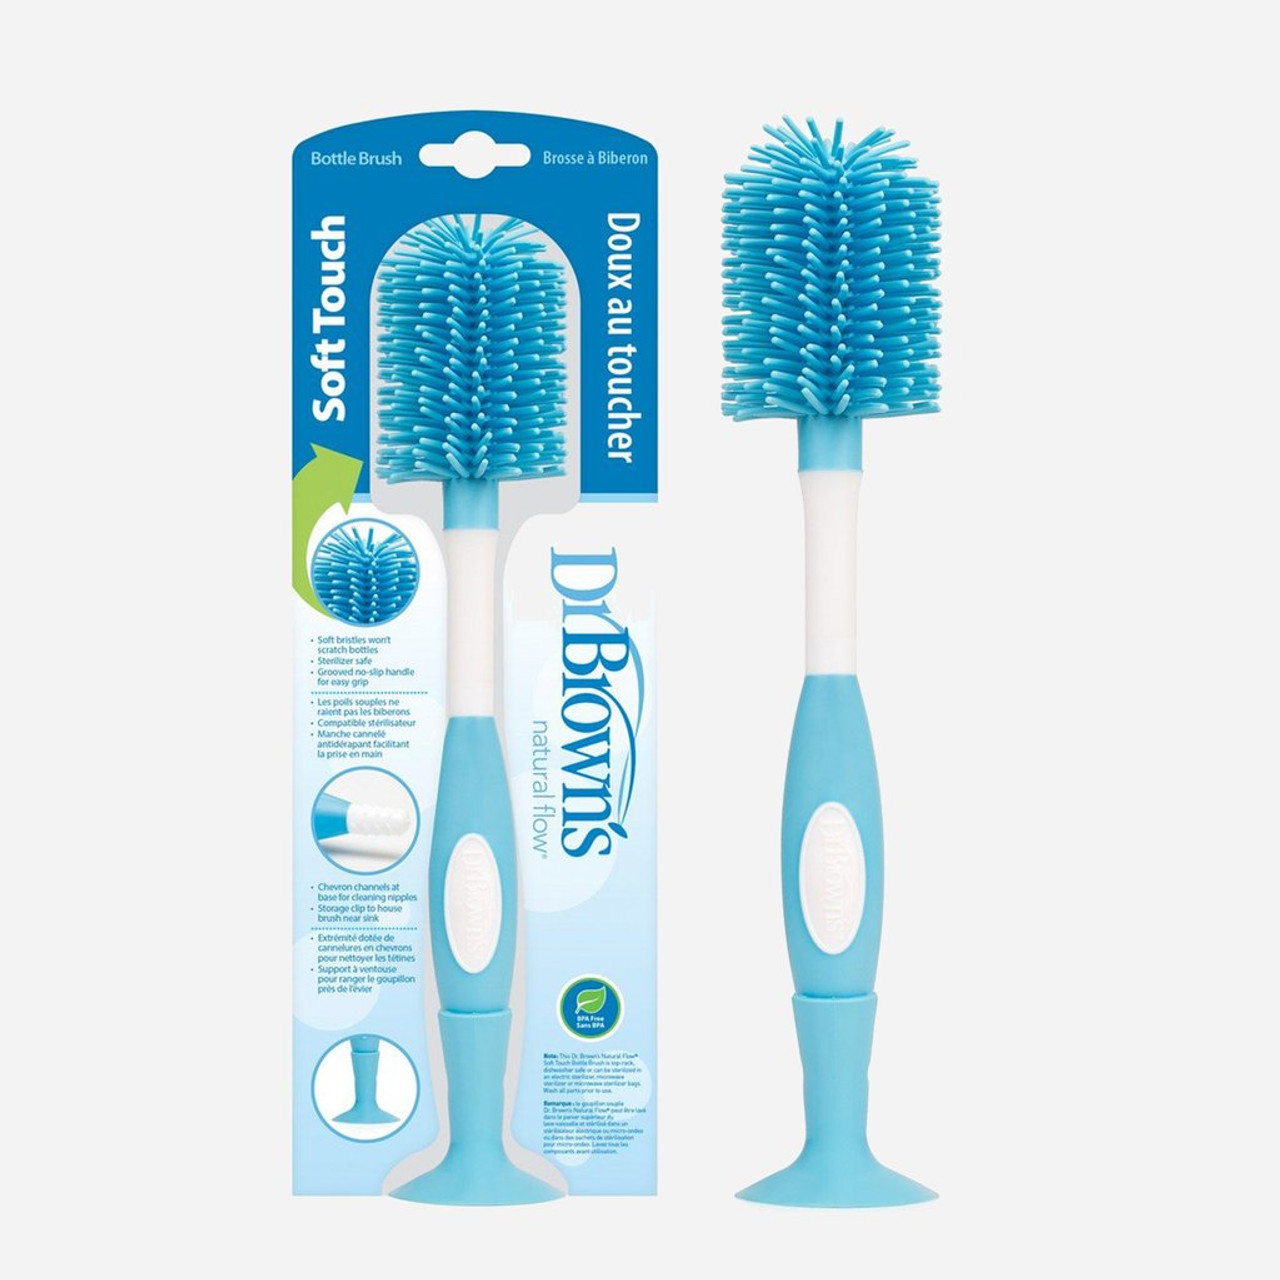 Dr Brown's Soft Touch Bottle Brush at Baby Barn Discounts Thoroughly and efficiently clean all of your bottles with Dr Brown's Soft Touch Bottle Brush.